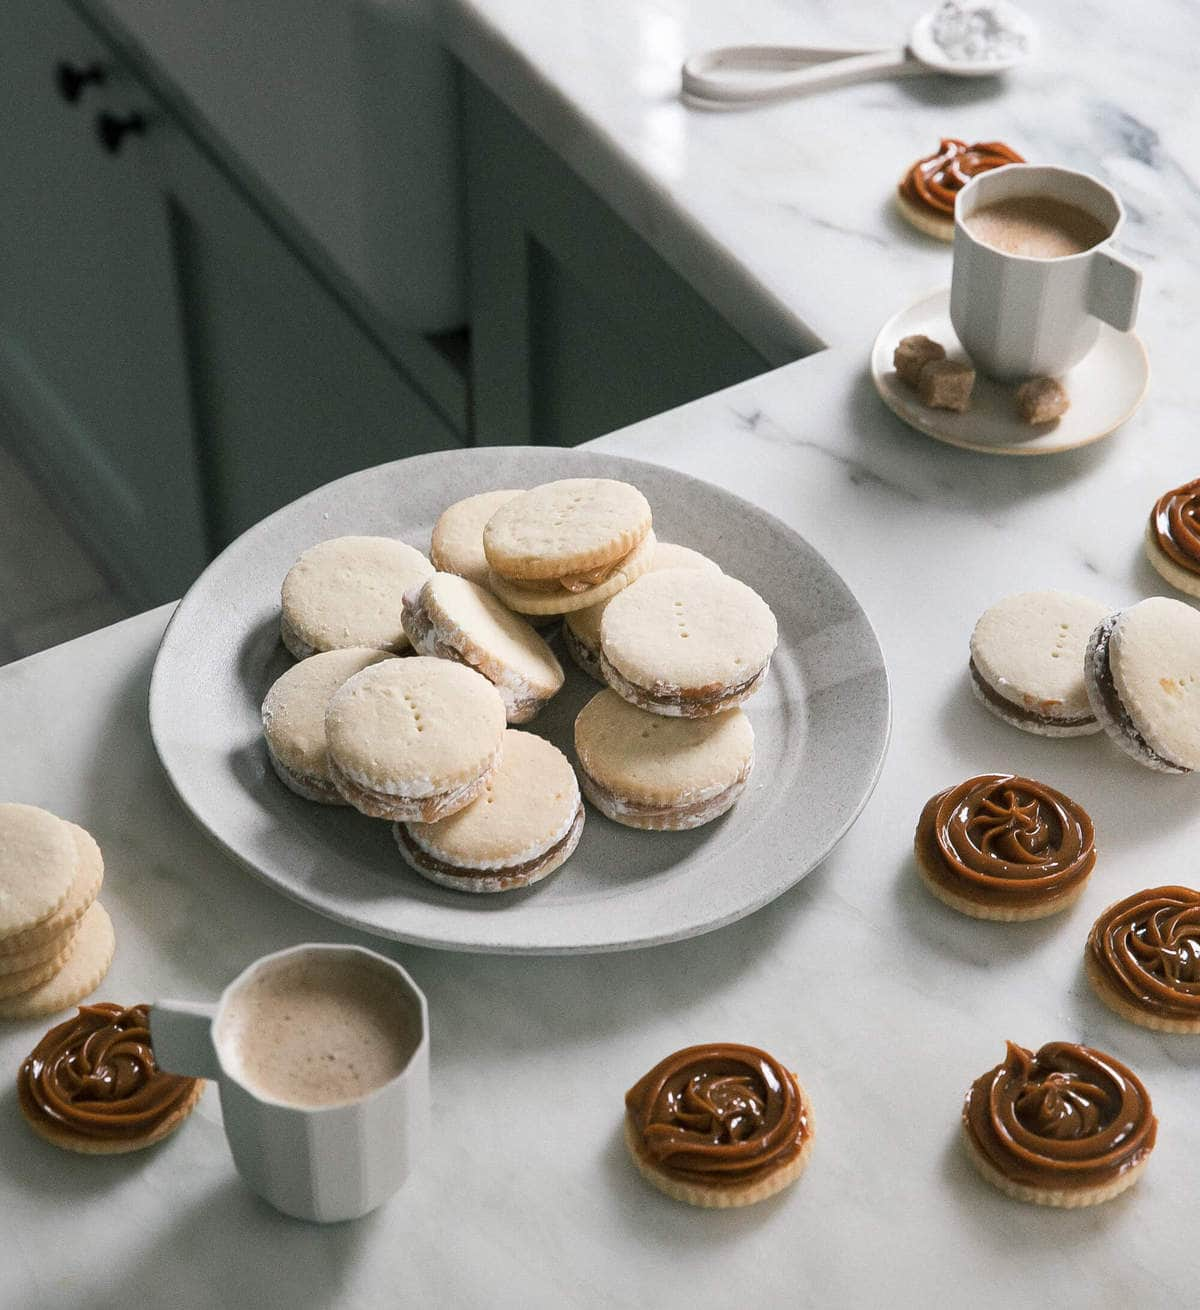 Plate of Alfajores with coffee